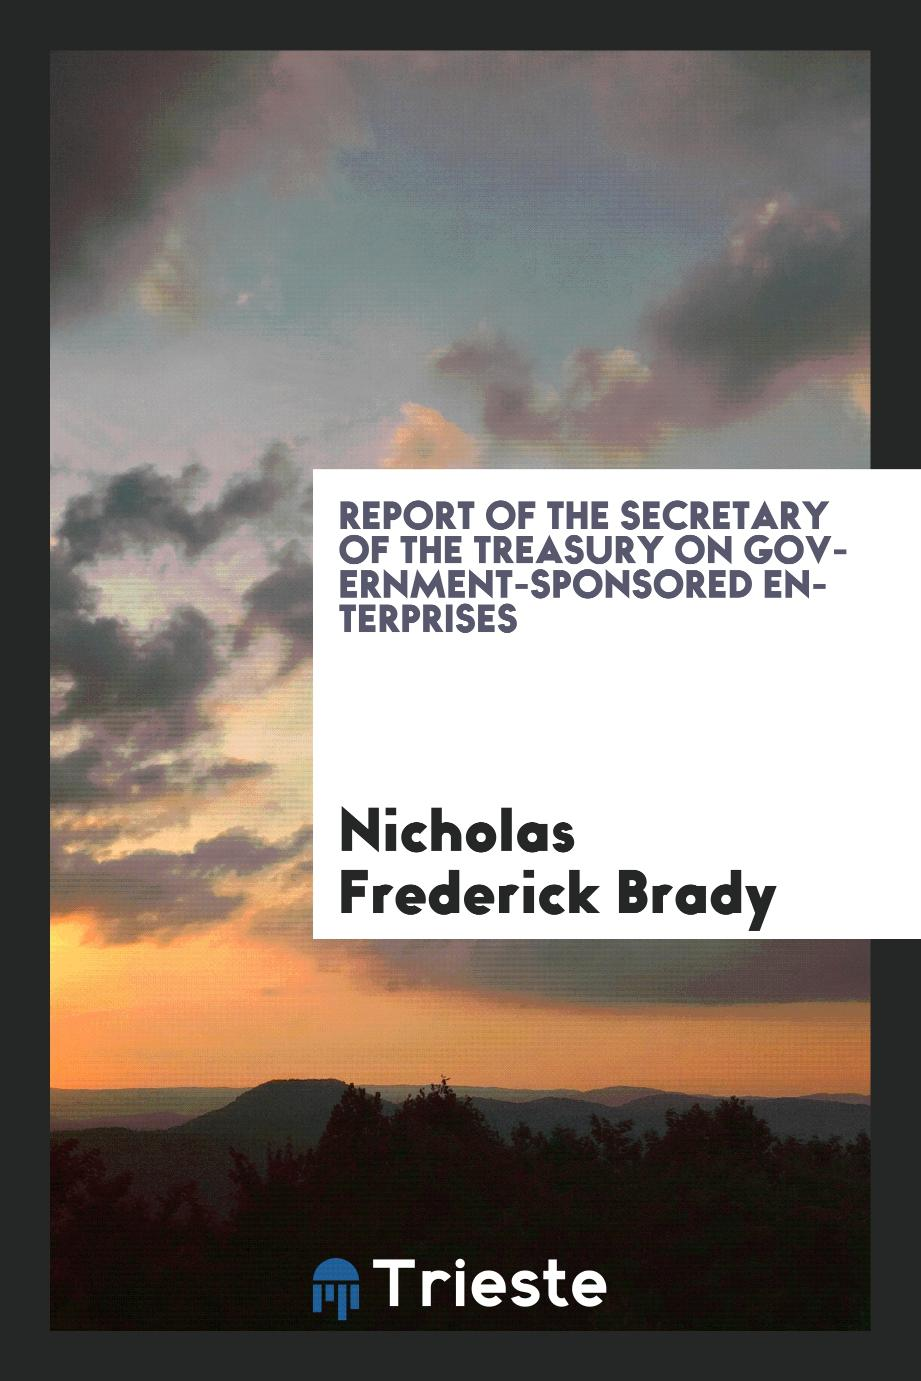 Nicholas Frederick Brady - Report of the Secretary of the Treasury on Government-Sponsored Enterprises